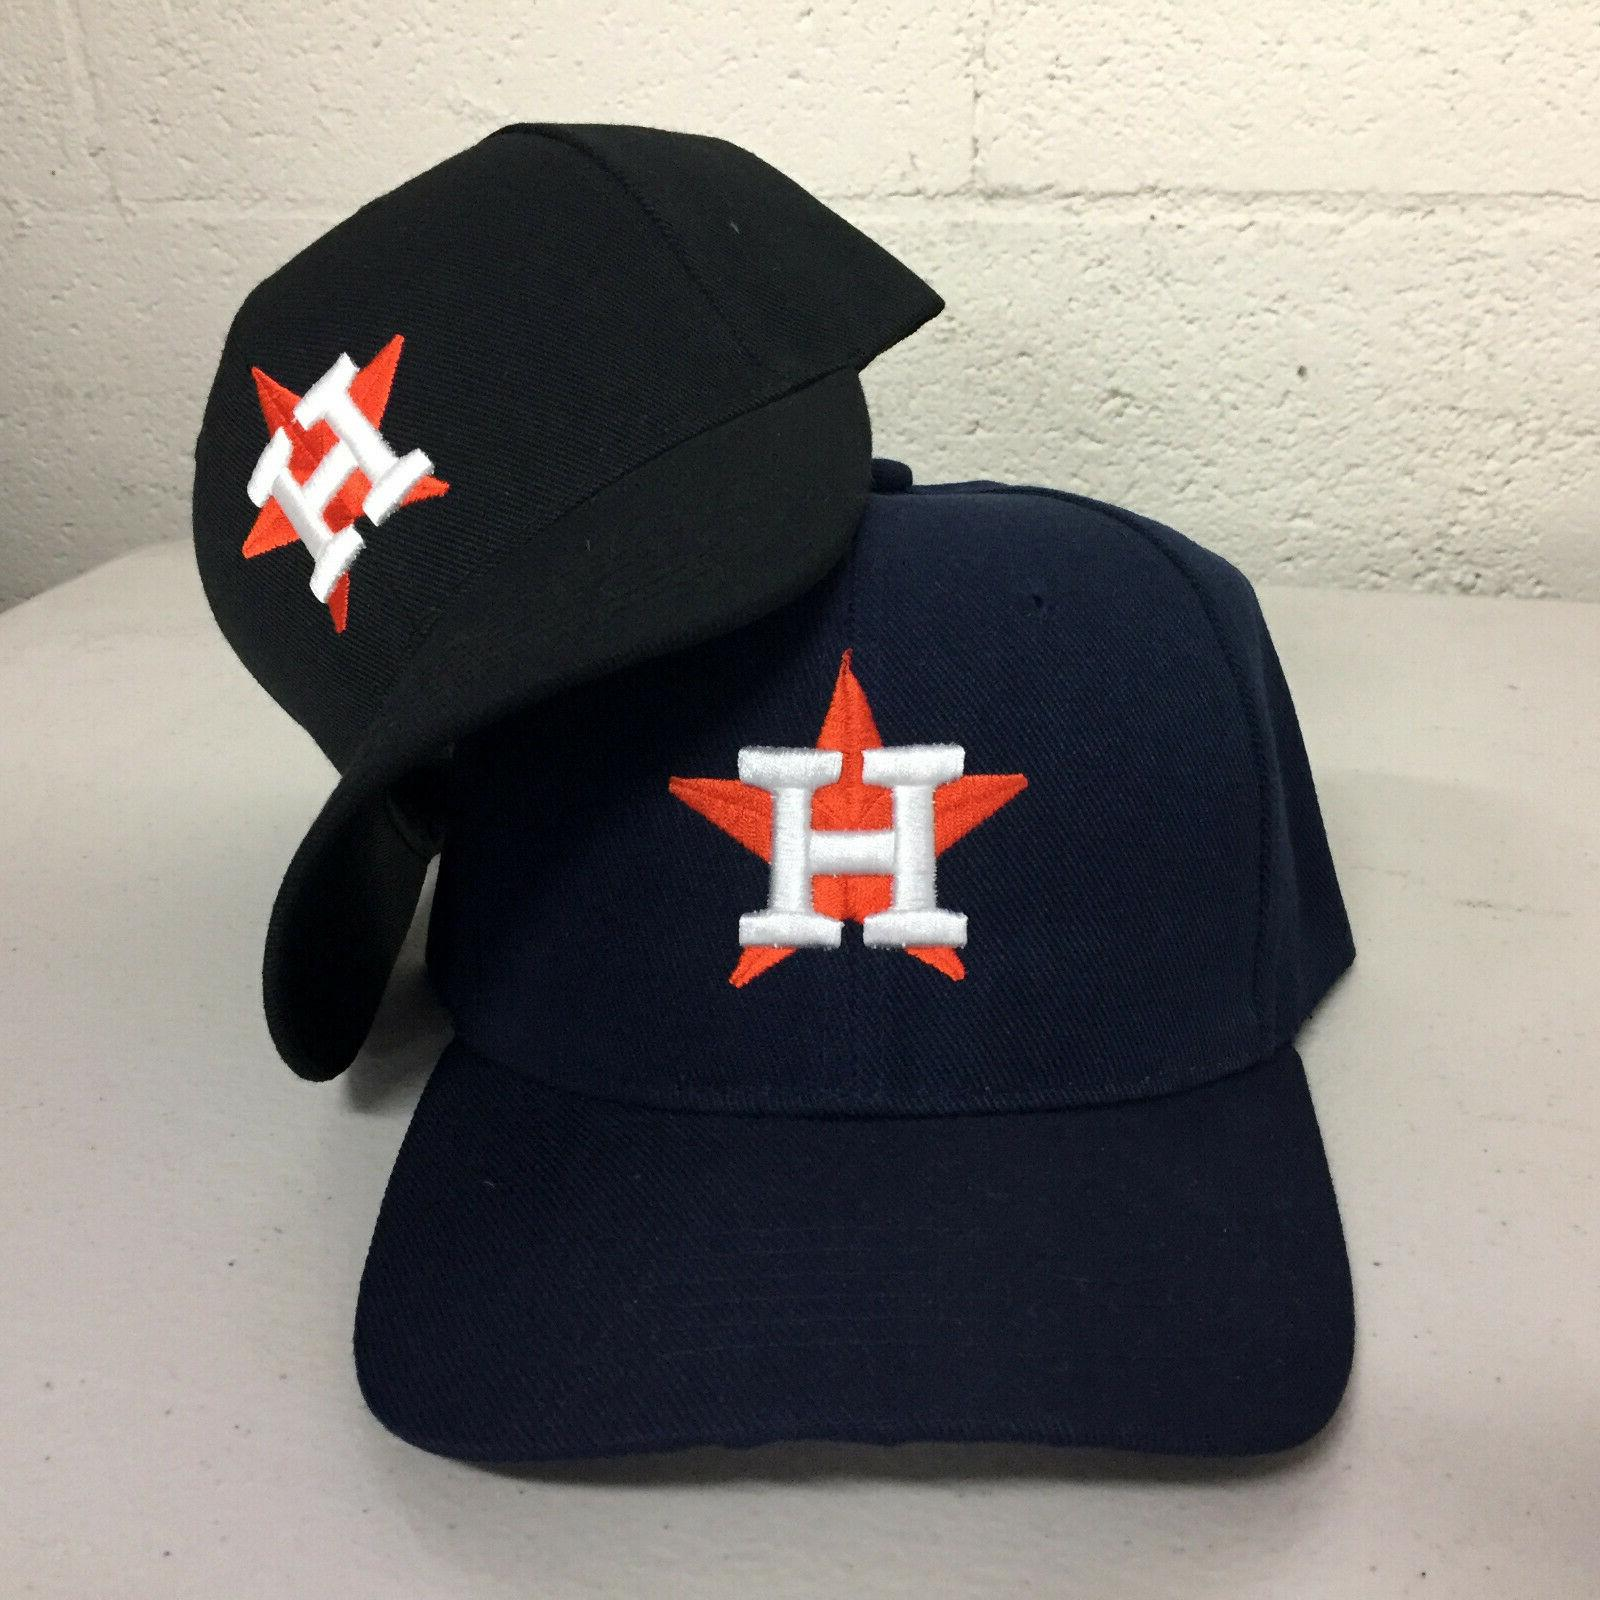 houston astros cap logo hat embroidered men